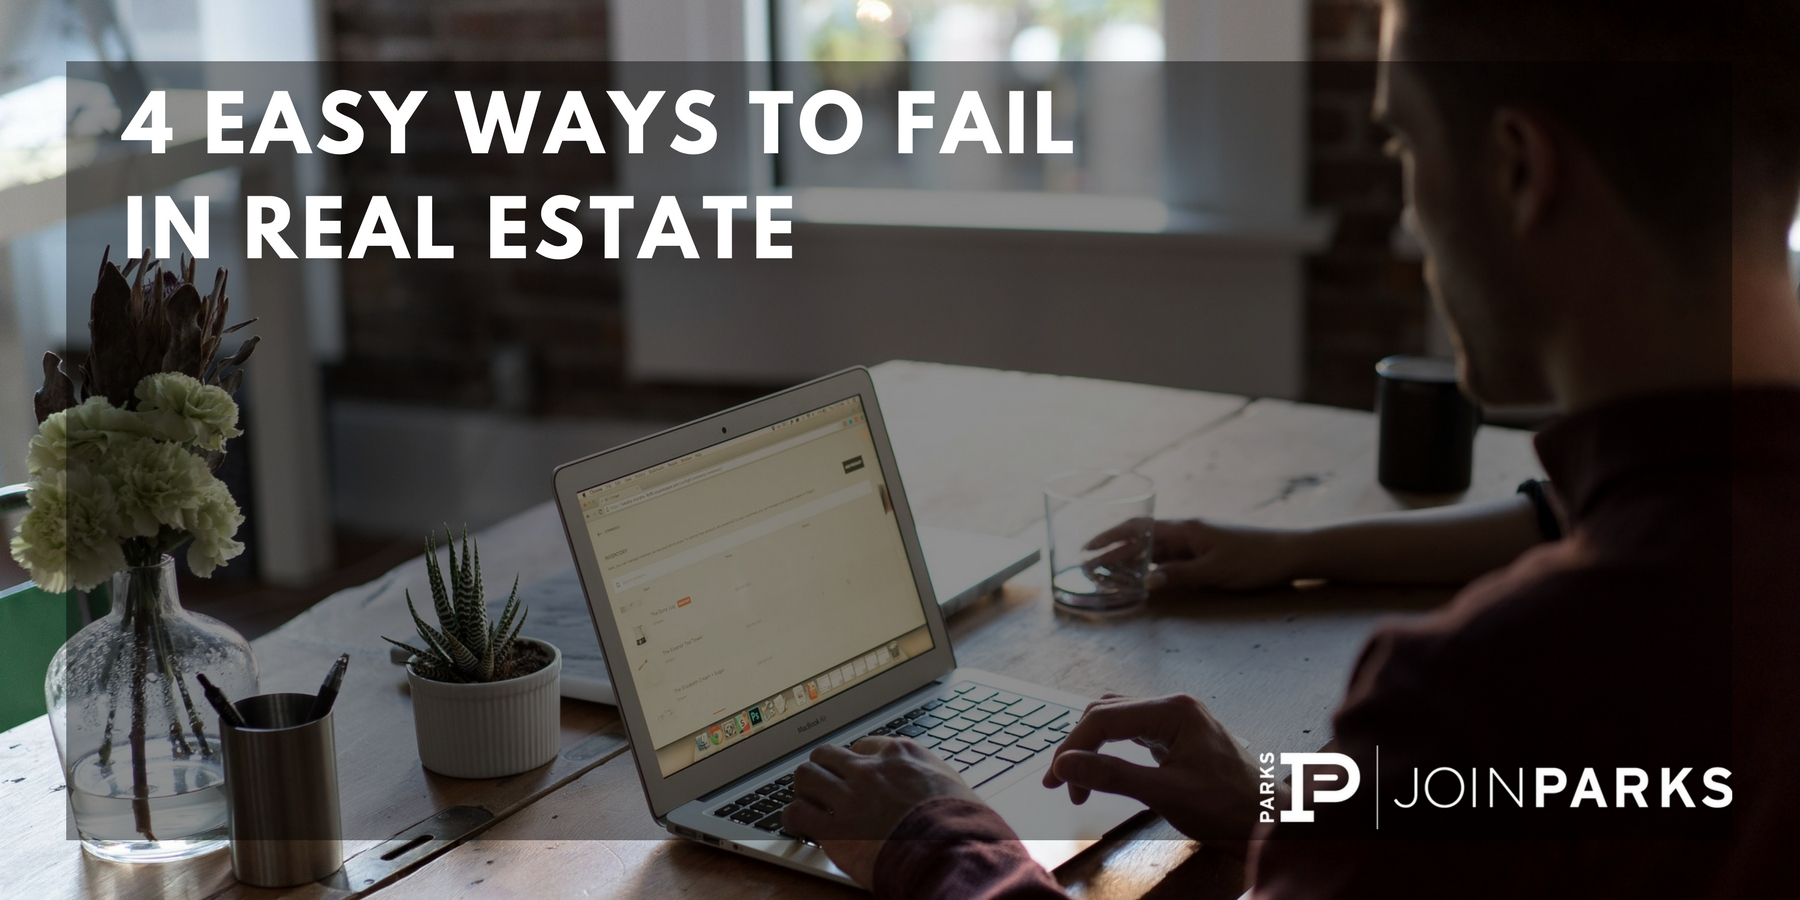 4 Easy Ways to Fail in Real Estate.jpg